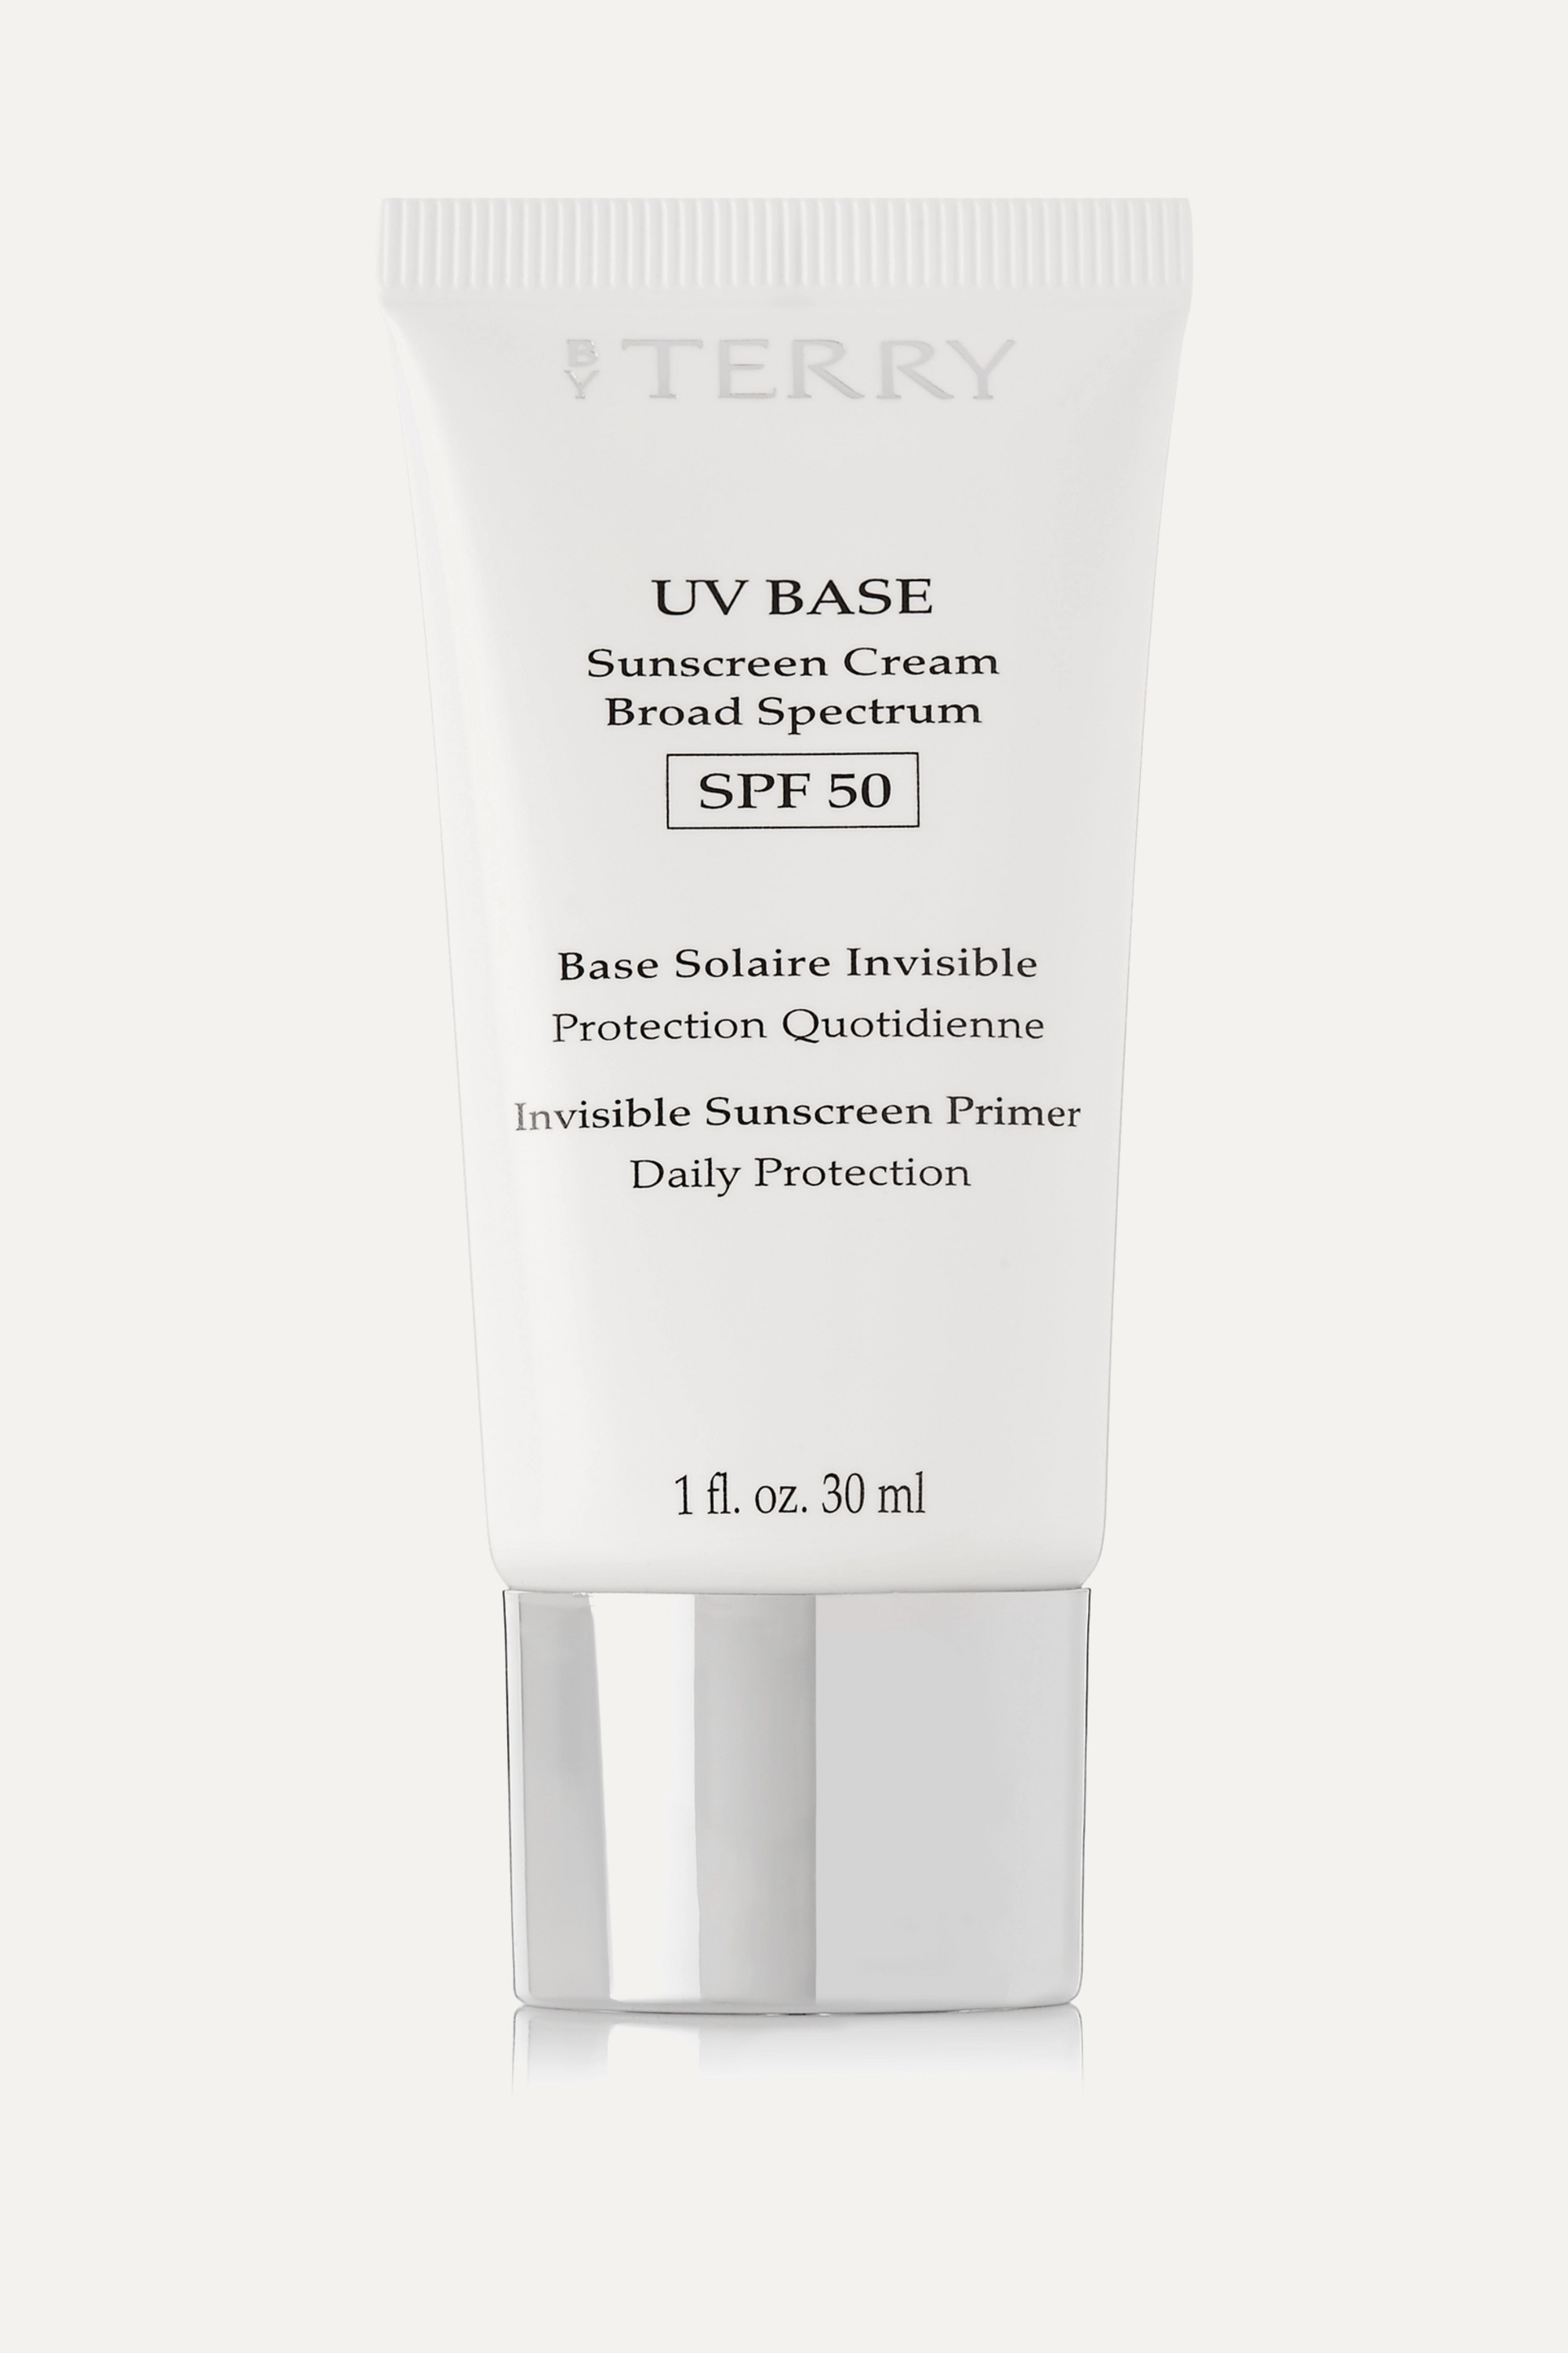 BY TERRY UV Base Sunscreen Cream Broad Spectrum SPF50